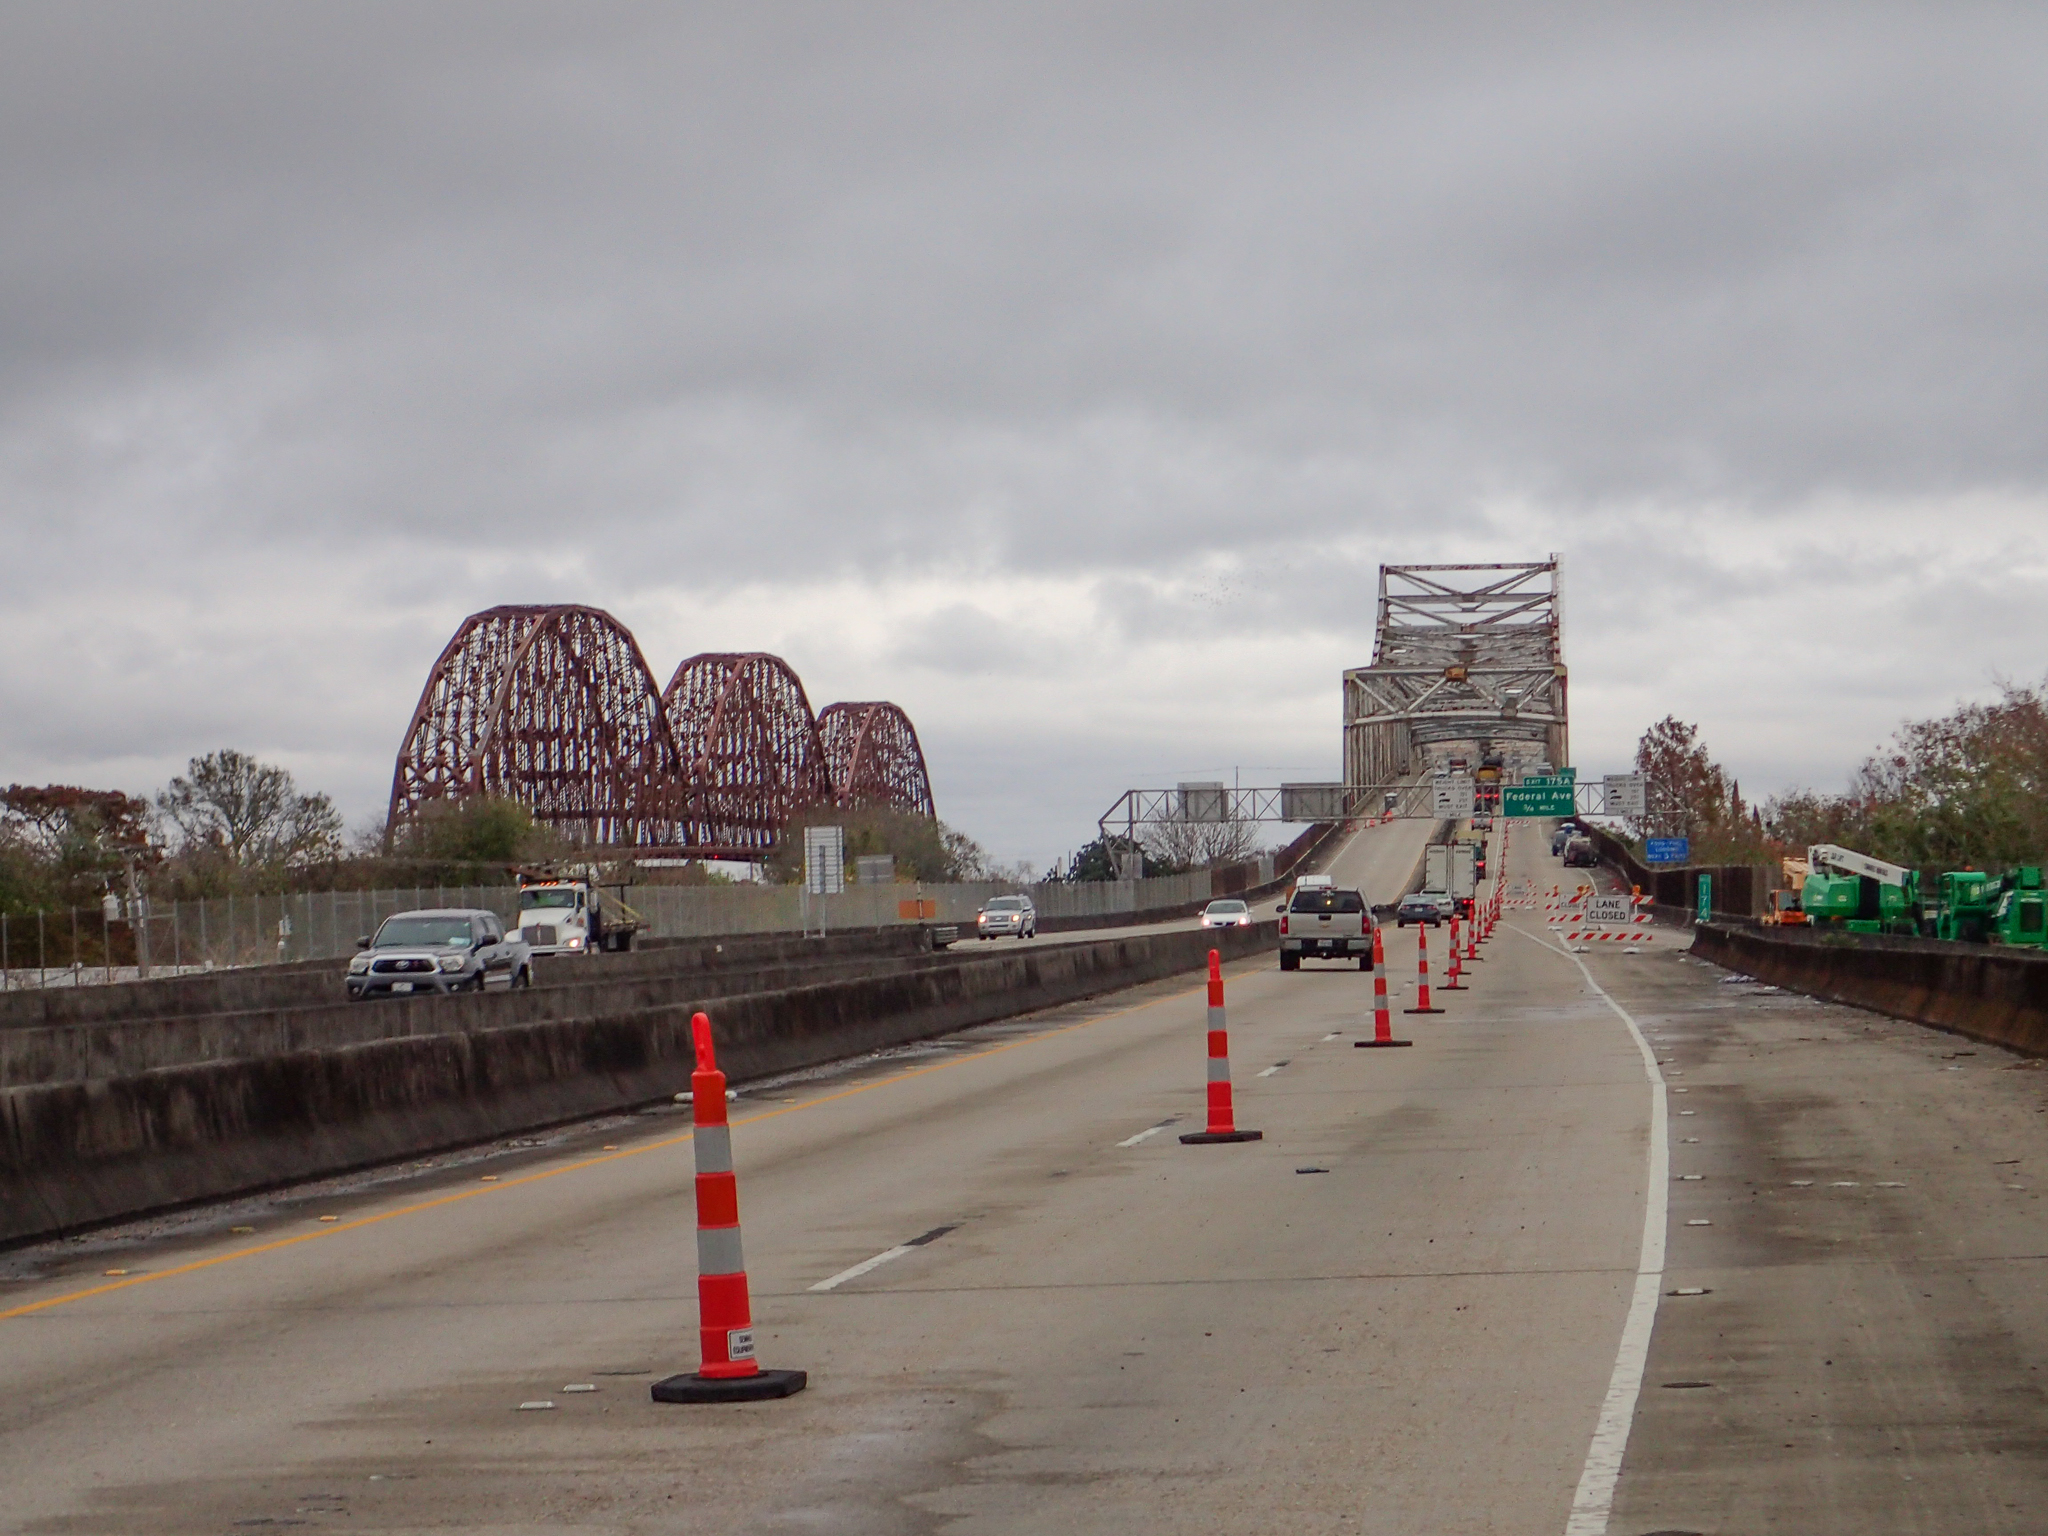 Approaching another bridge - at least a closed lane is available